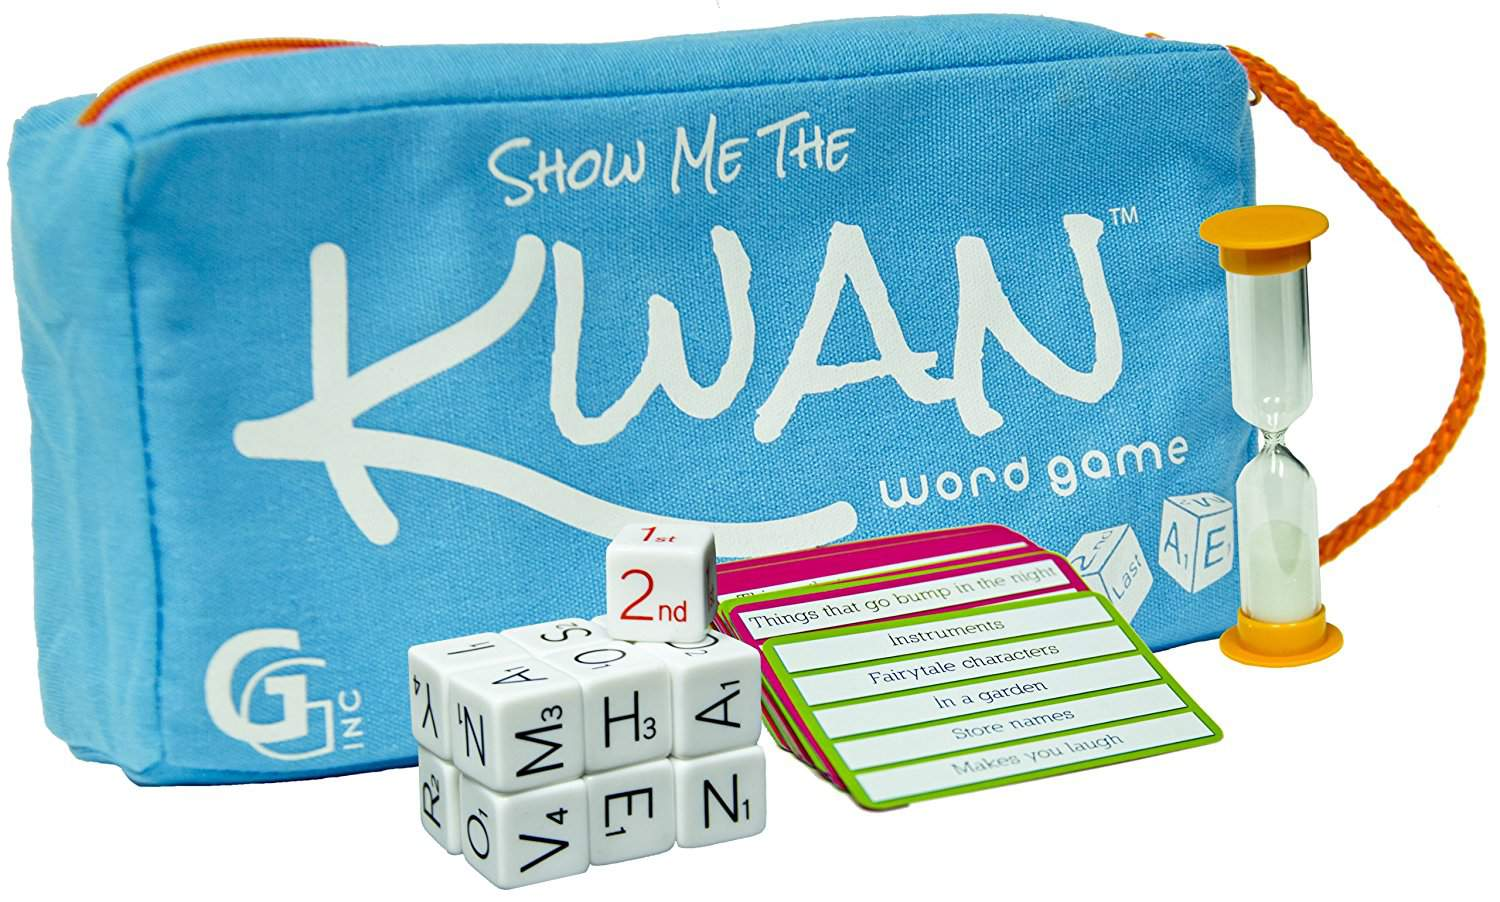 show-me-the-kwan